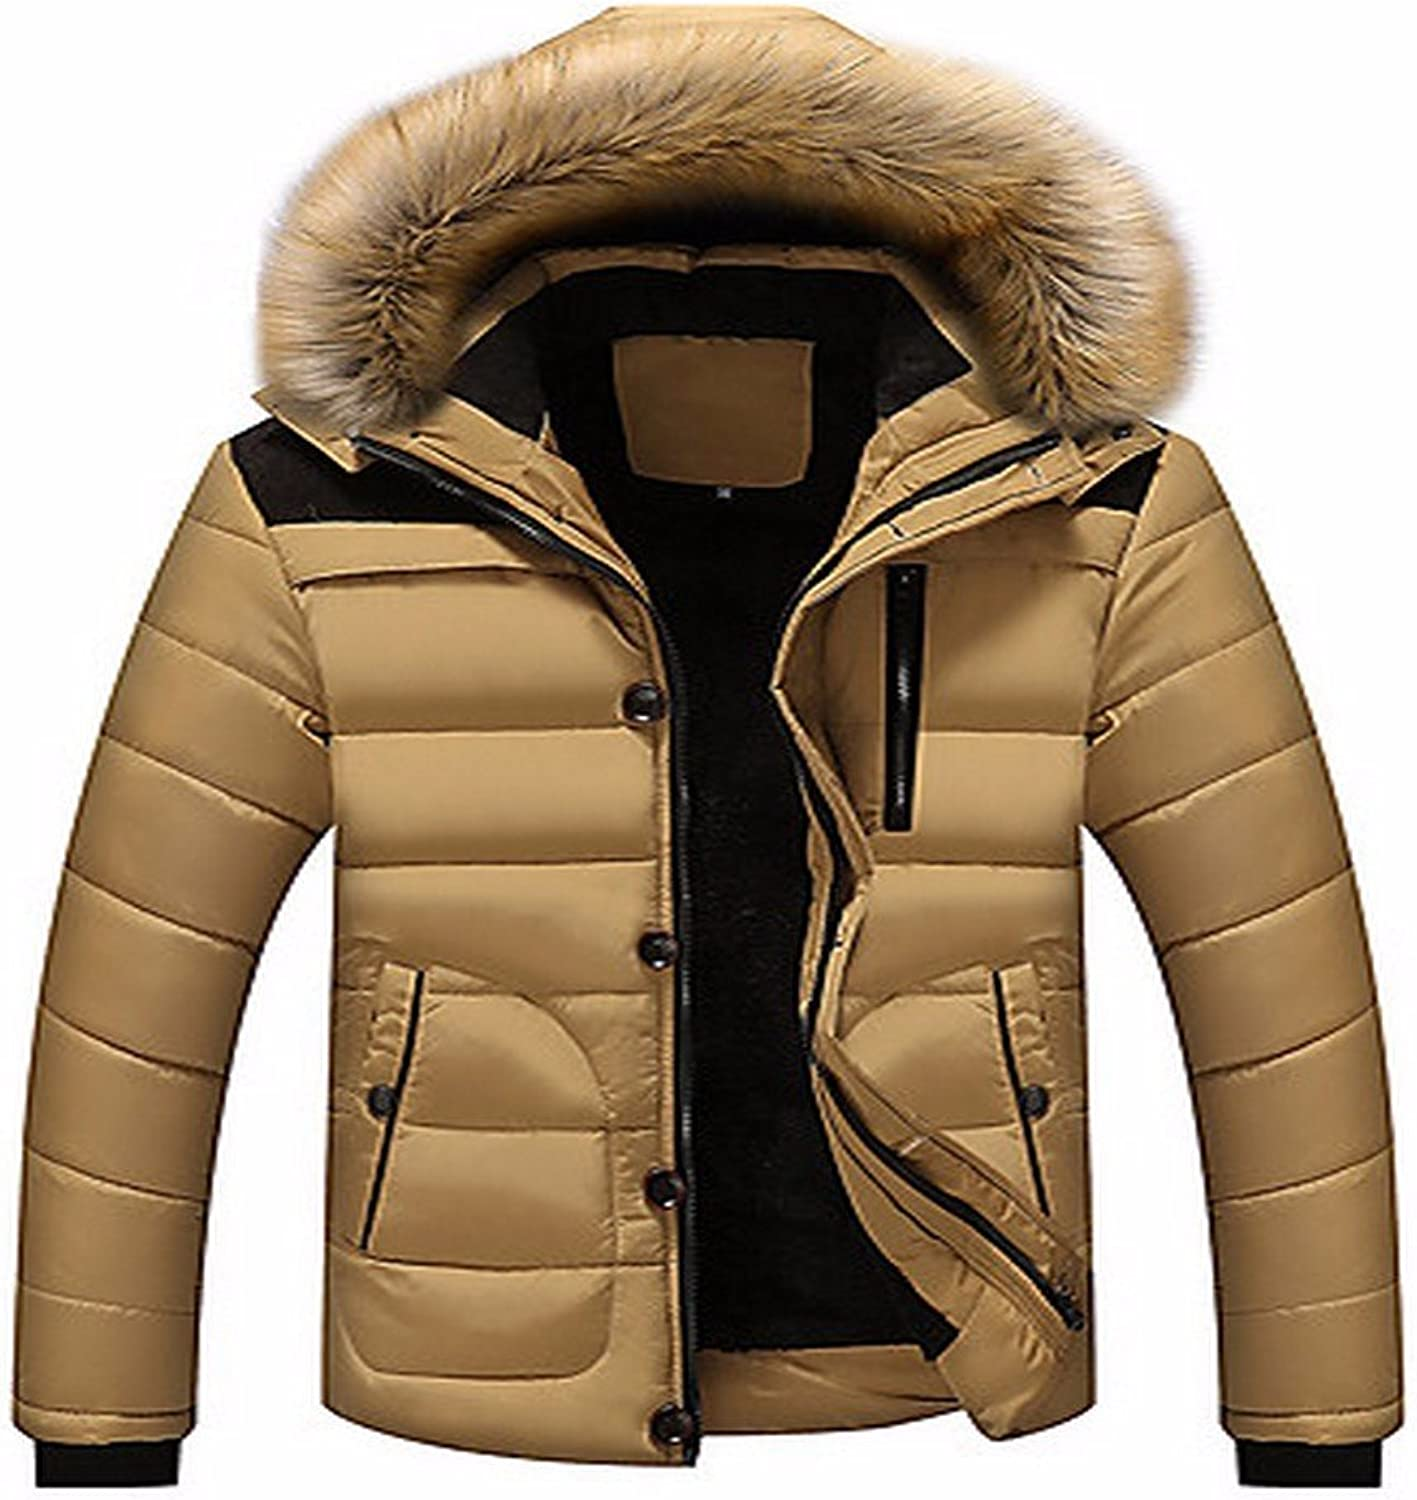 ZHUDJ Men's Short Padded Coat,Simple Casual Daily Striped-Polyester Polyester Long Sleeves